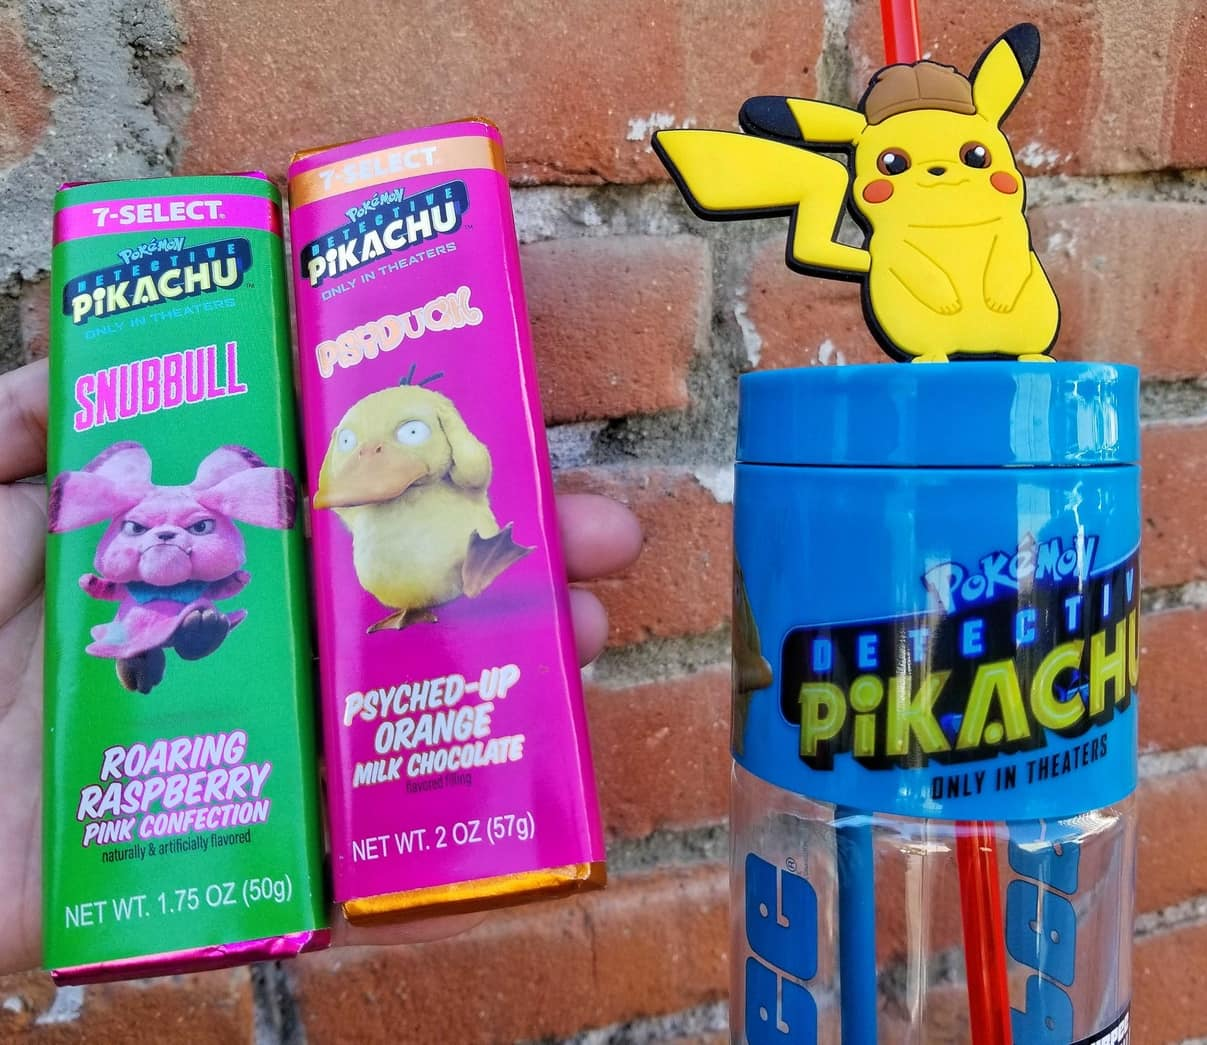 Detective Pikachu Treats Are Popping Up At 7 Eleven Stores Nationwide